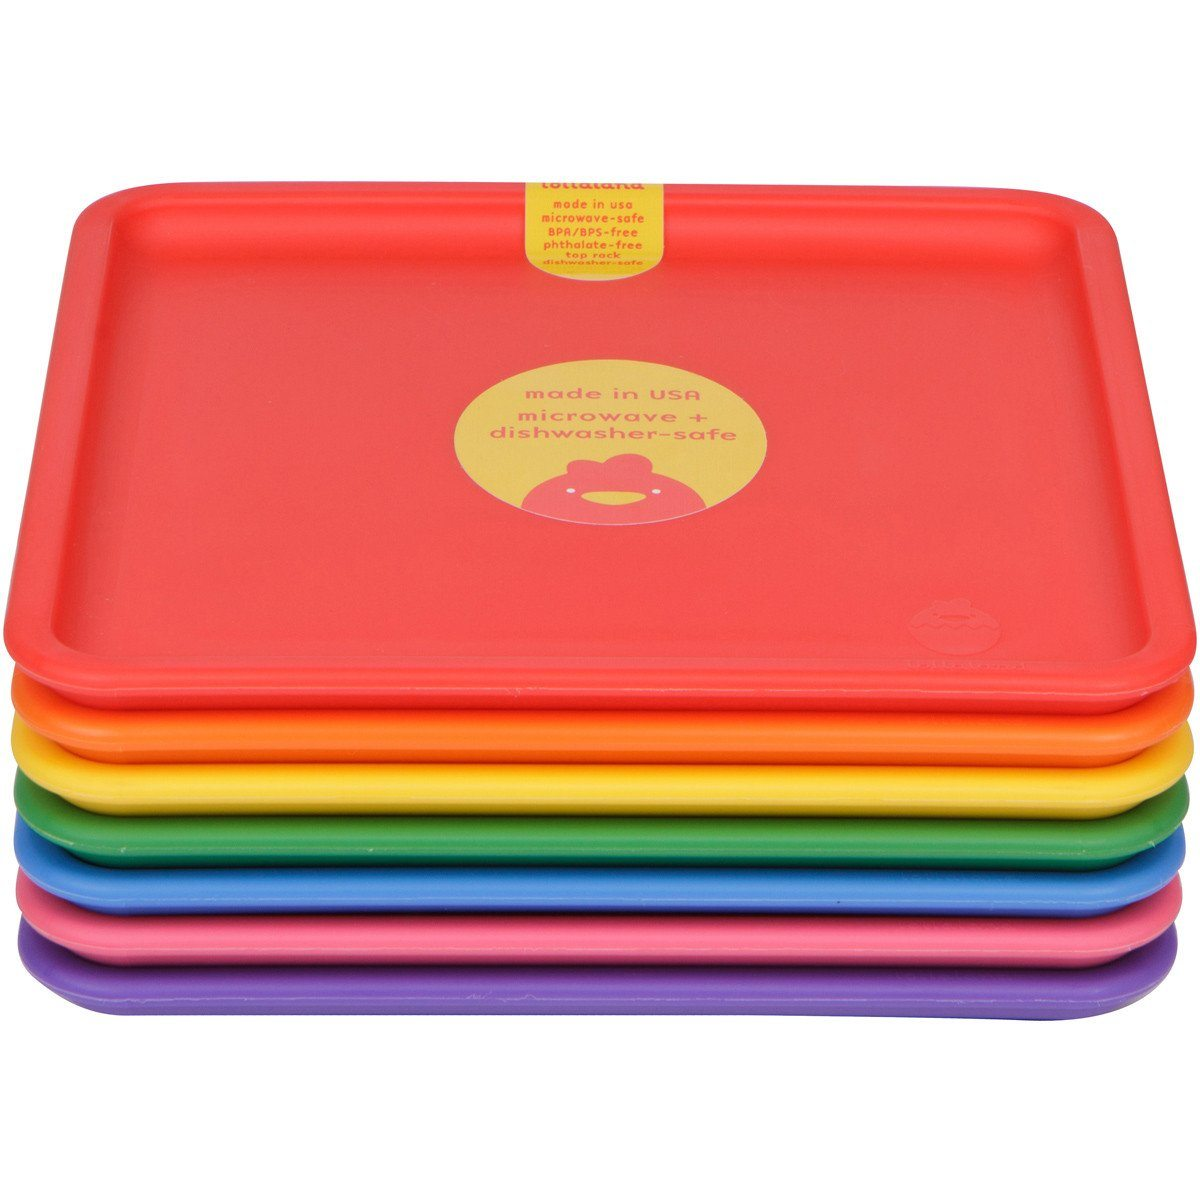 Lollaland, Mealtime Plates - multiple colors, - Placewares